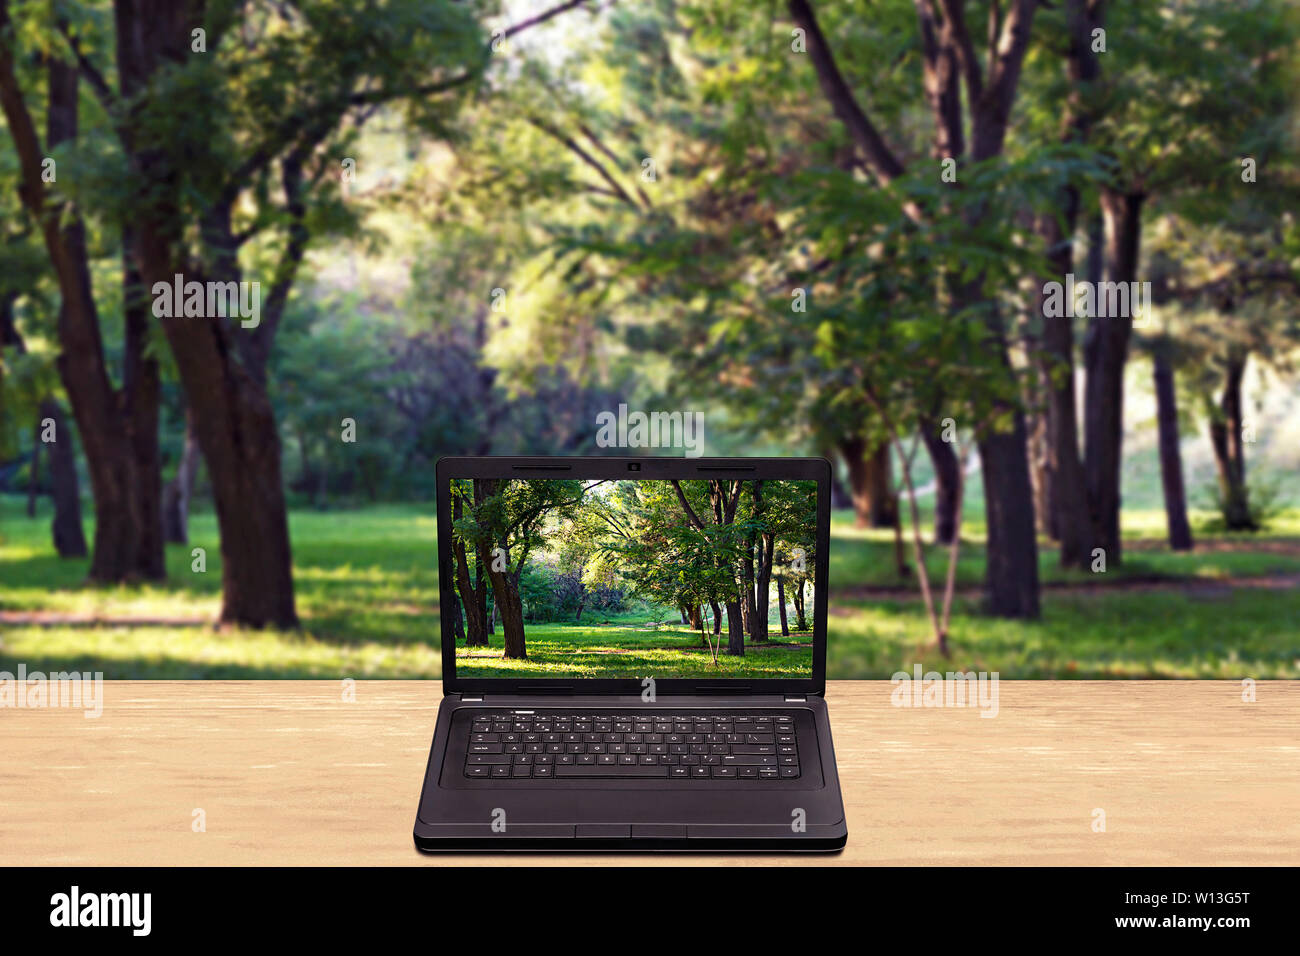 Laptop on a table against a blurred background forest - Stock Image